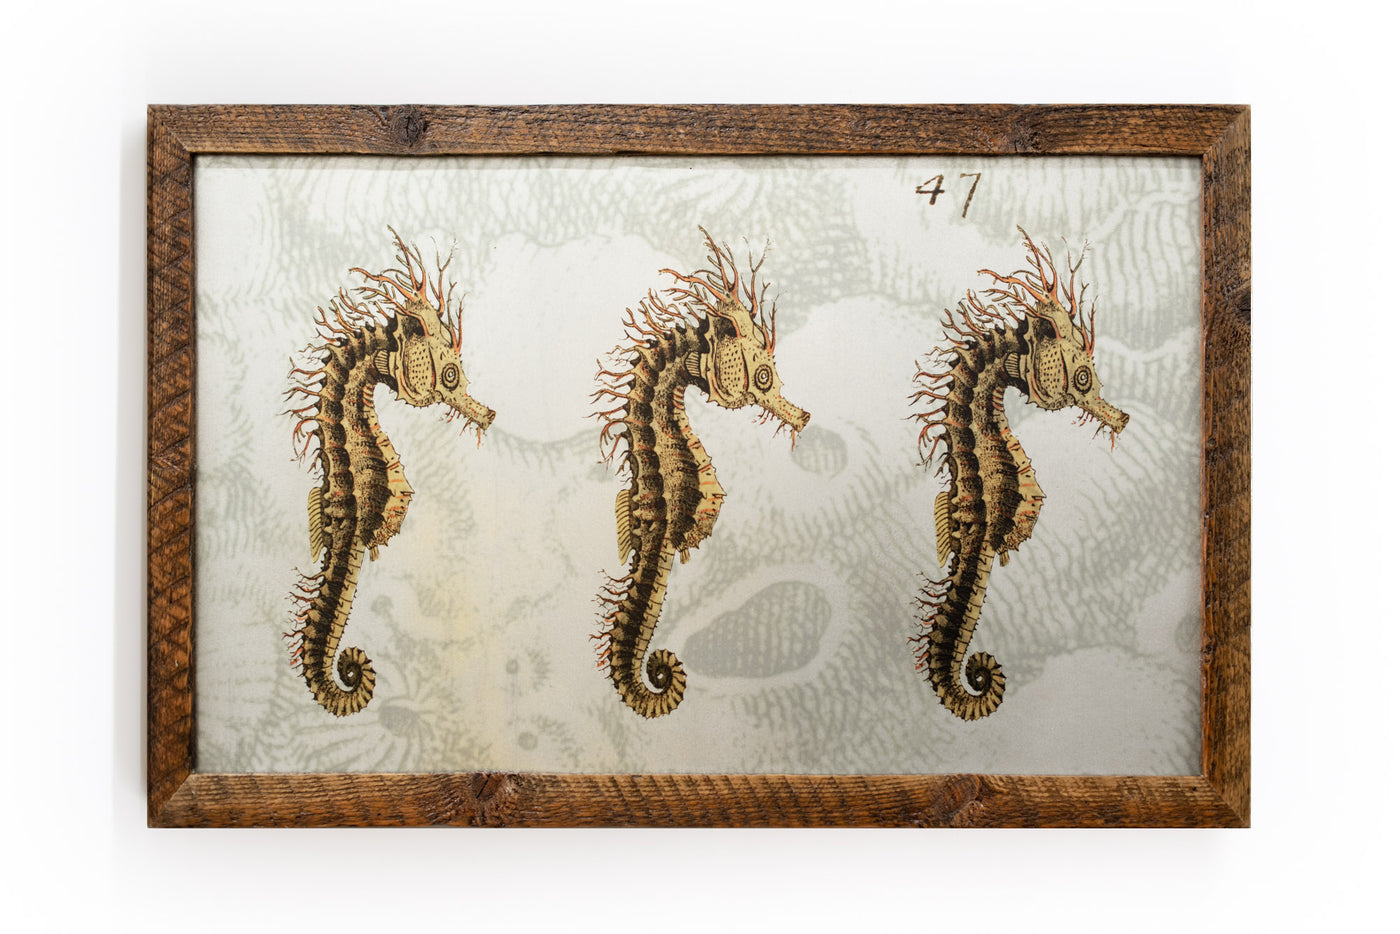 3 Seahorses on Galvanized Steel